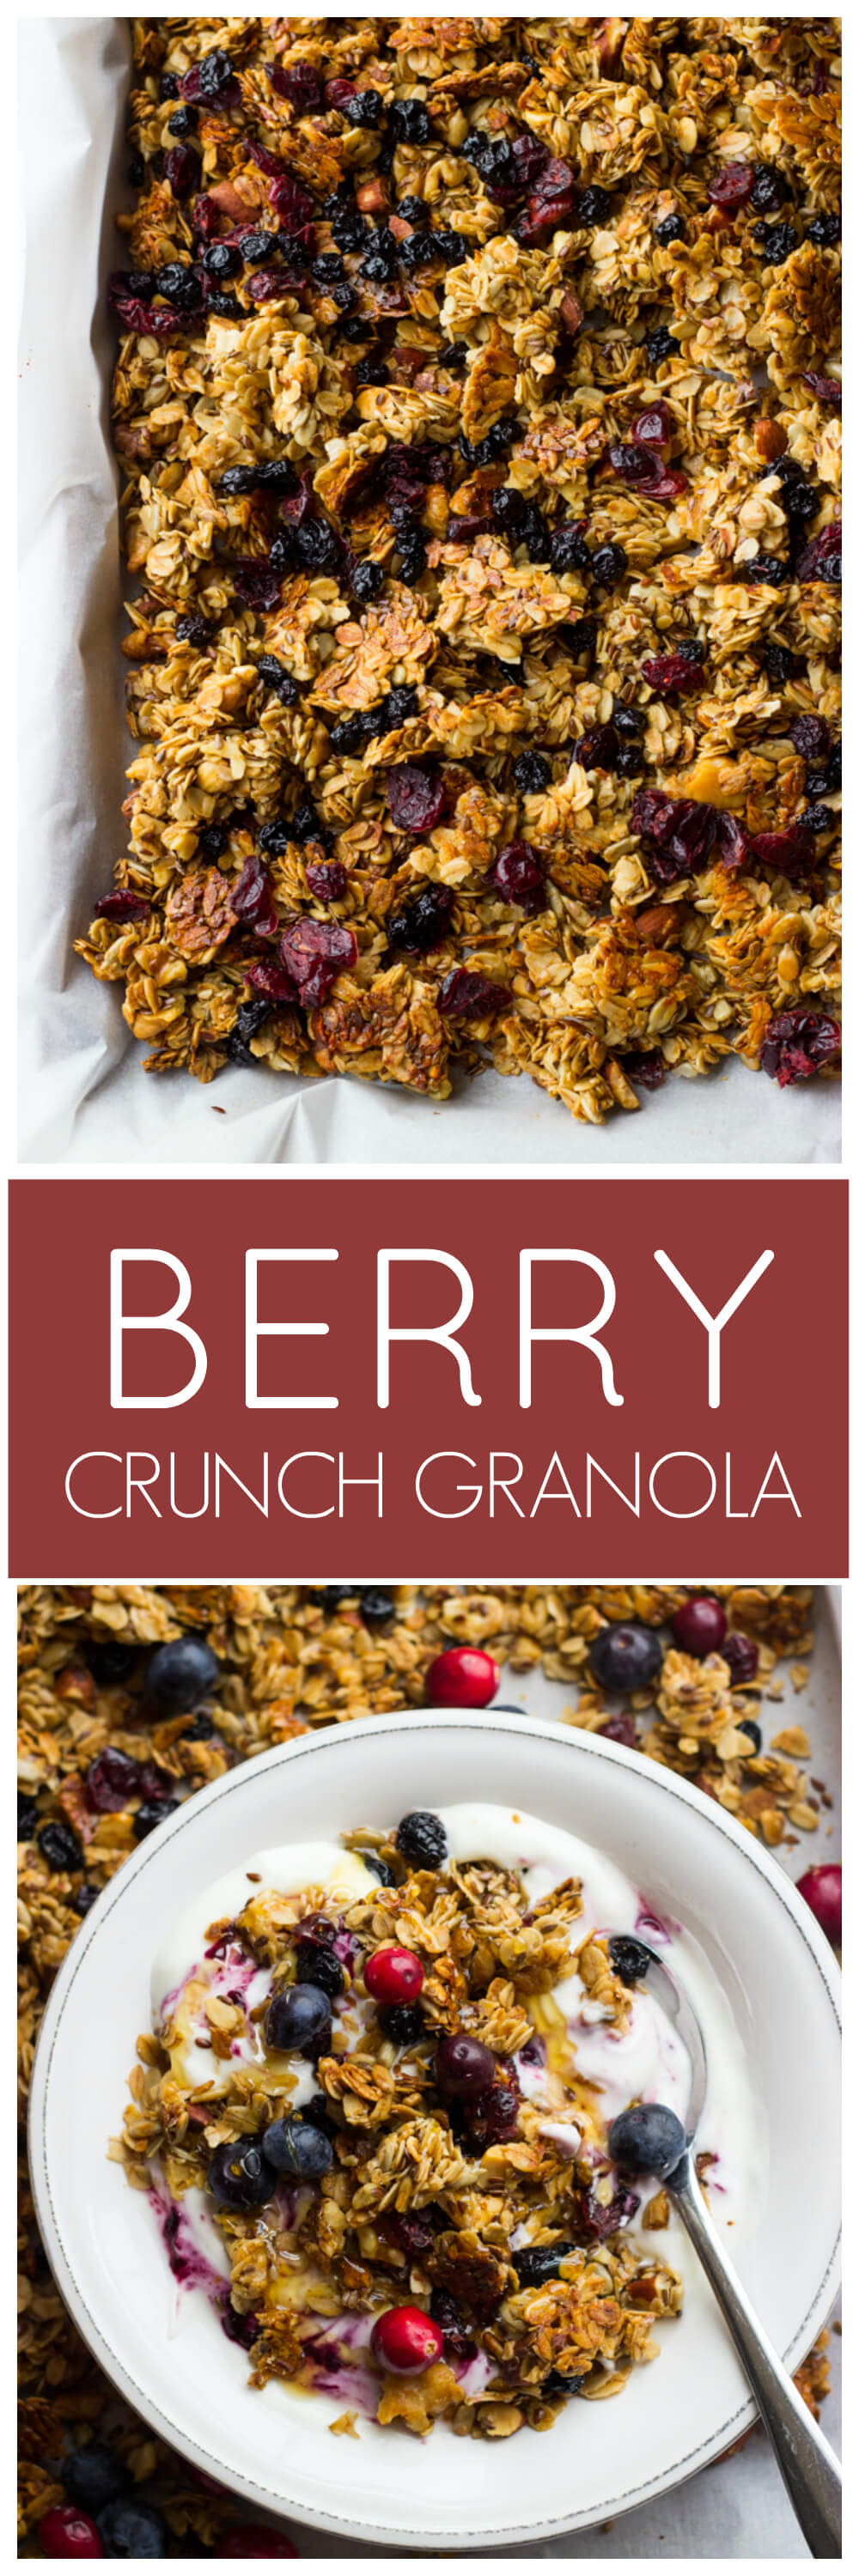 Berry Crunch Granola - simple, healthy, and lightly sweetened with honey | littlebroken.com @littlebroken